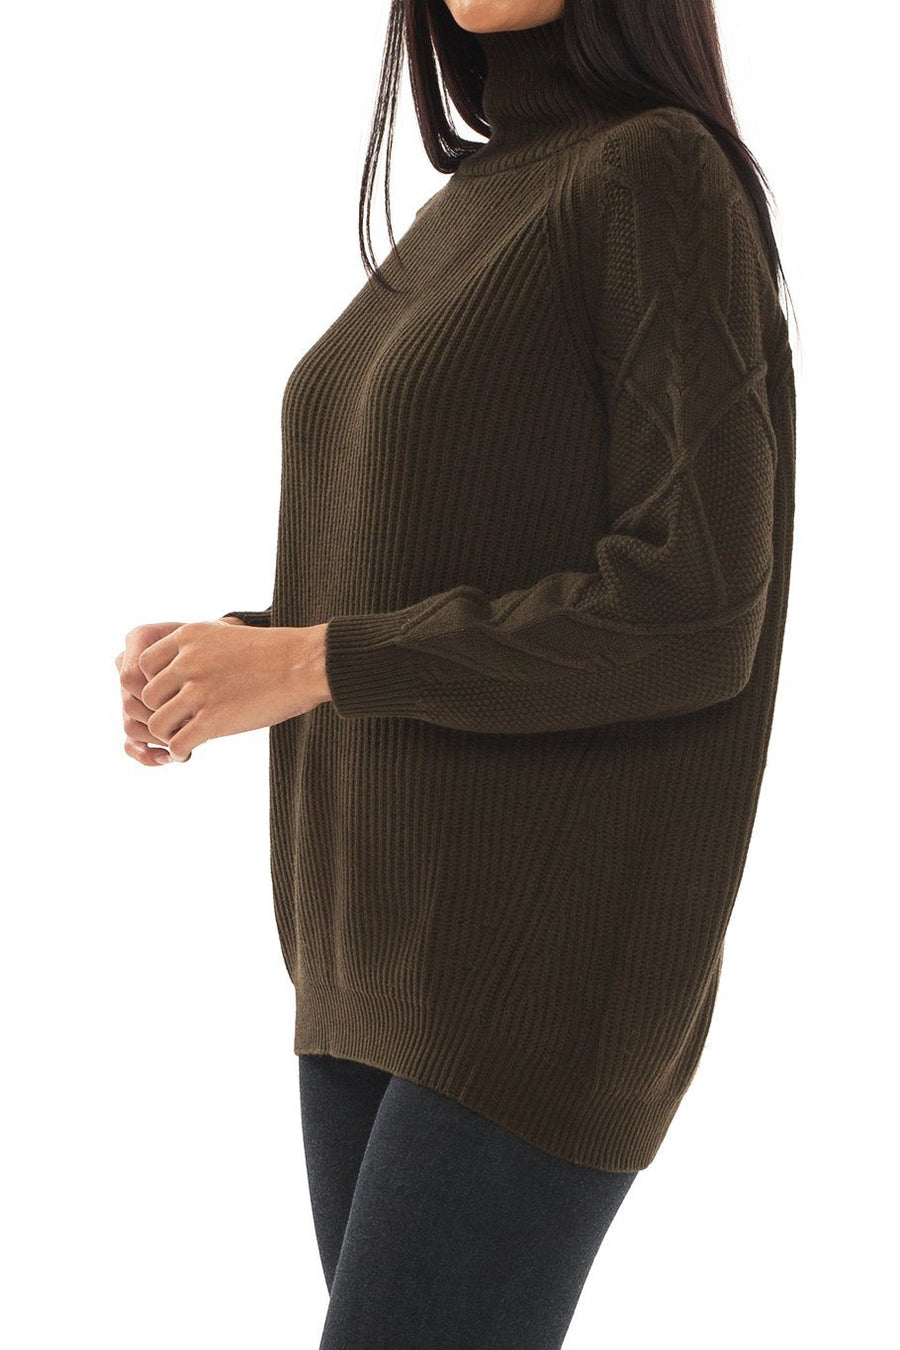 Banff Turtle Neck Sweater - Spruce - Shore